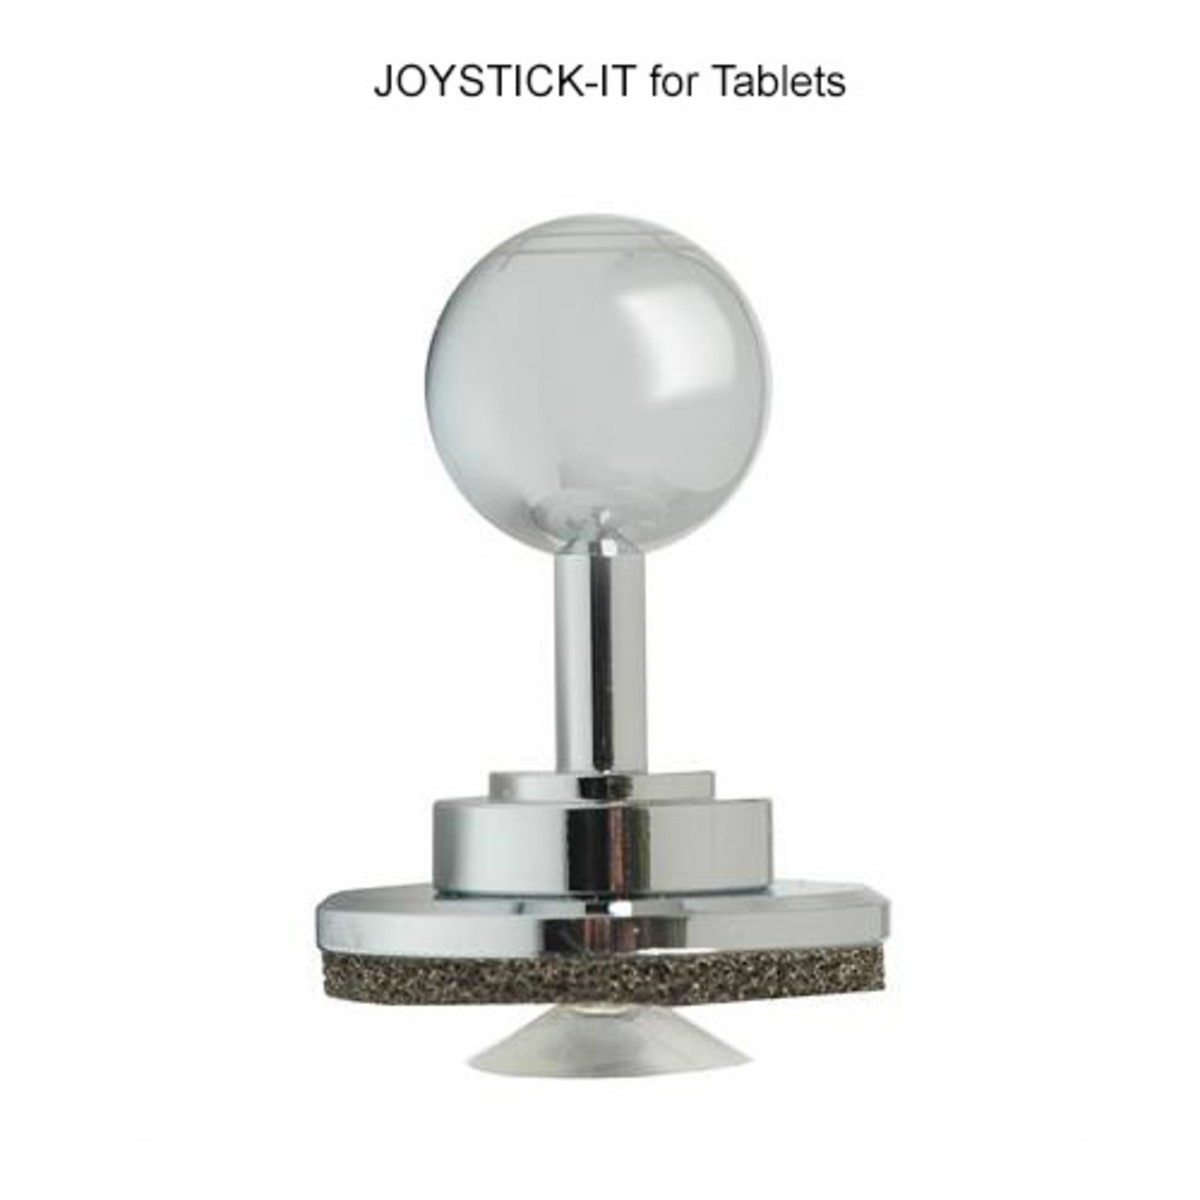 This is what the Joystick-It looks like. It has a suction cup and foam padding at the bottom.